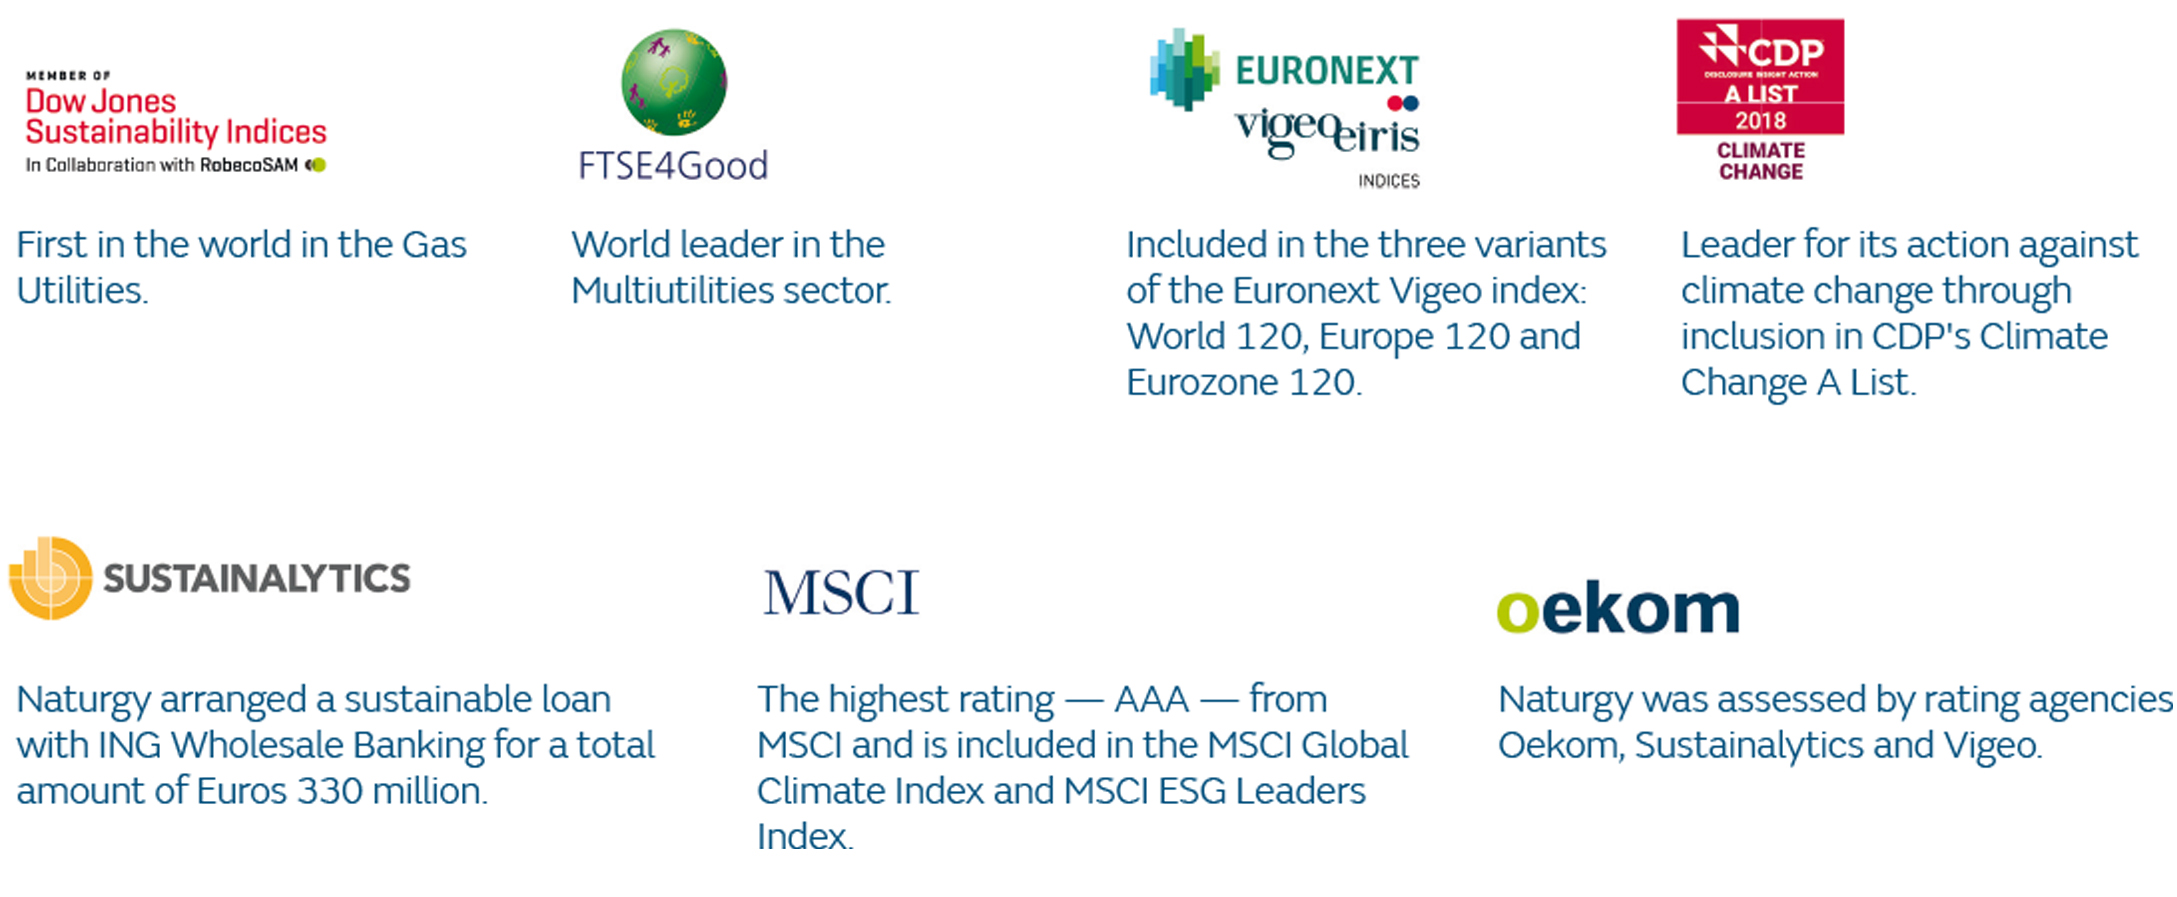 Presence in the sustainability indexes and ratings